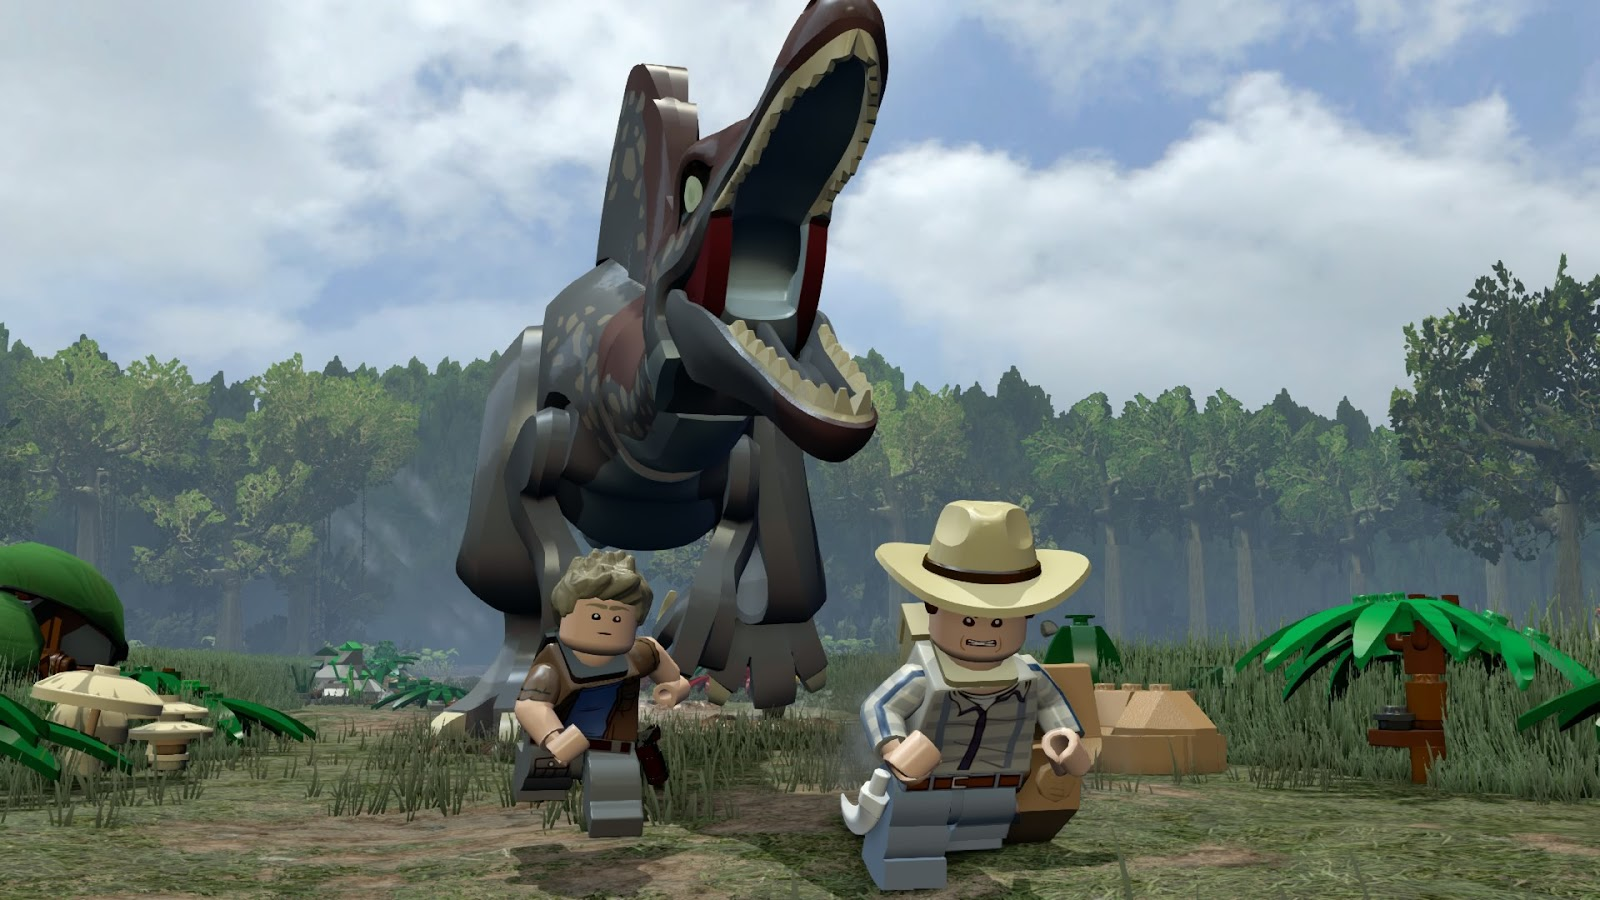 descargar lego jurassic world pc full español